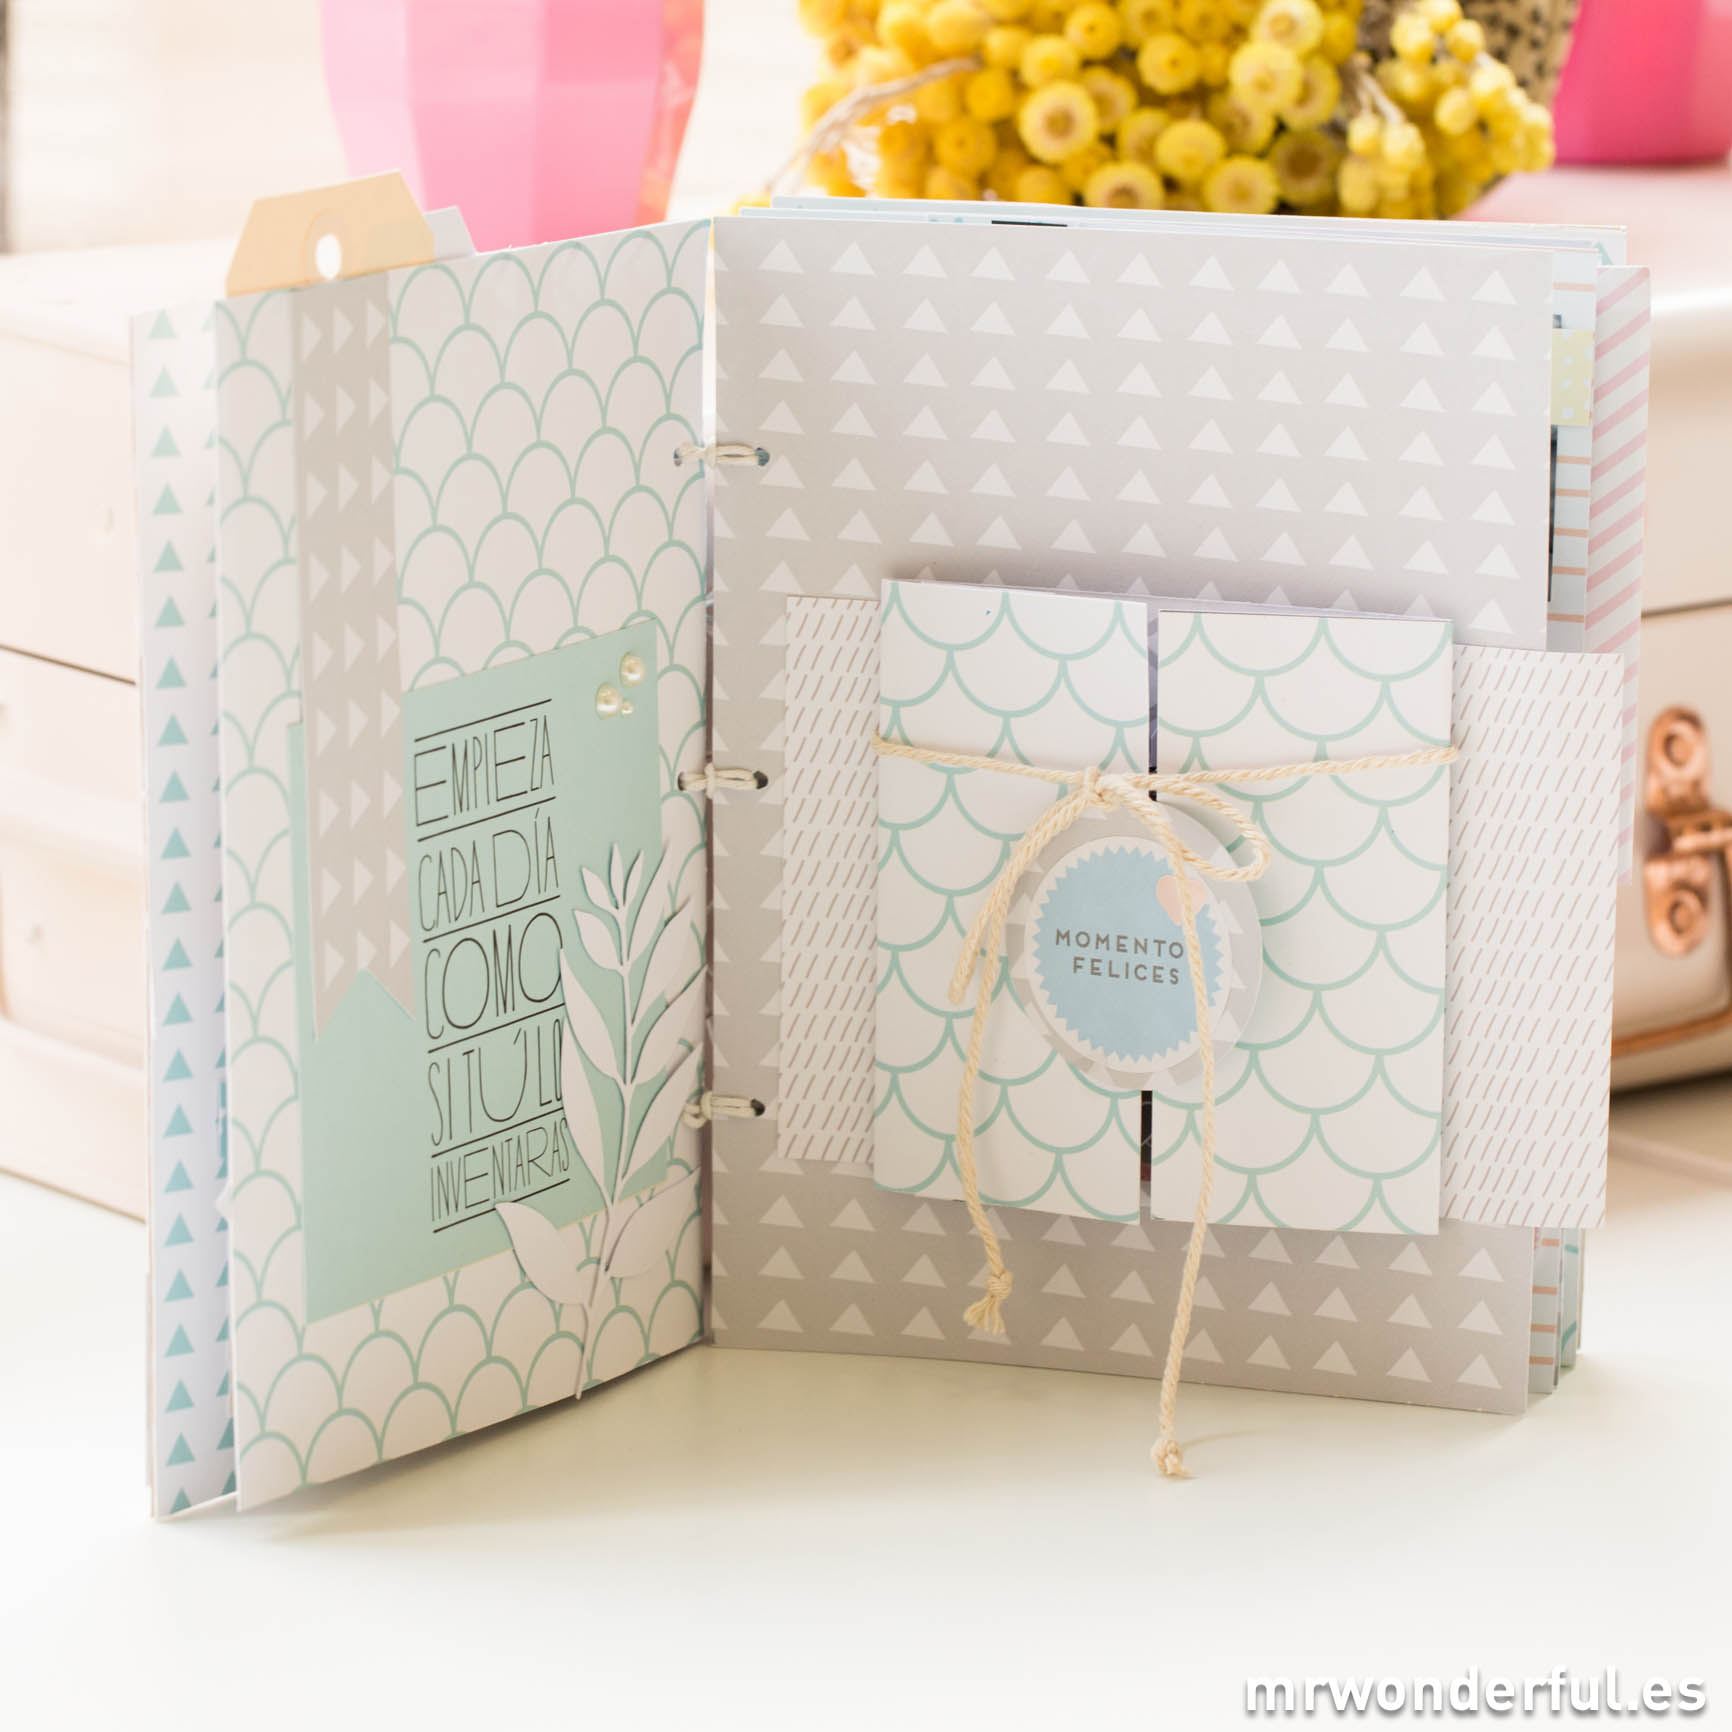 mrwonderful_eventos_curso-scrap_mayo14-164